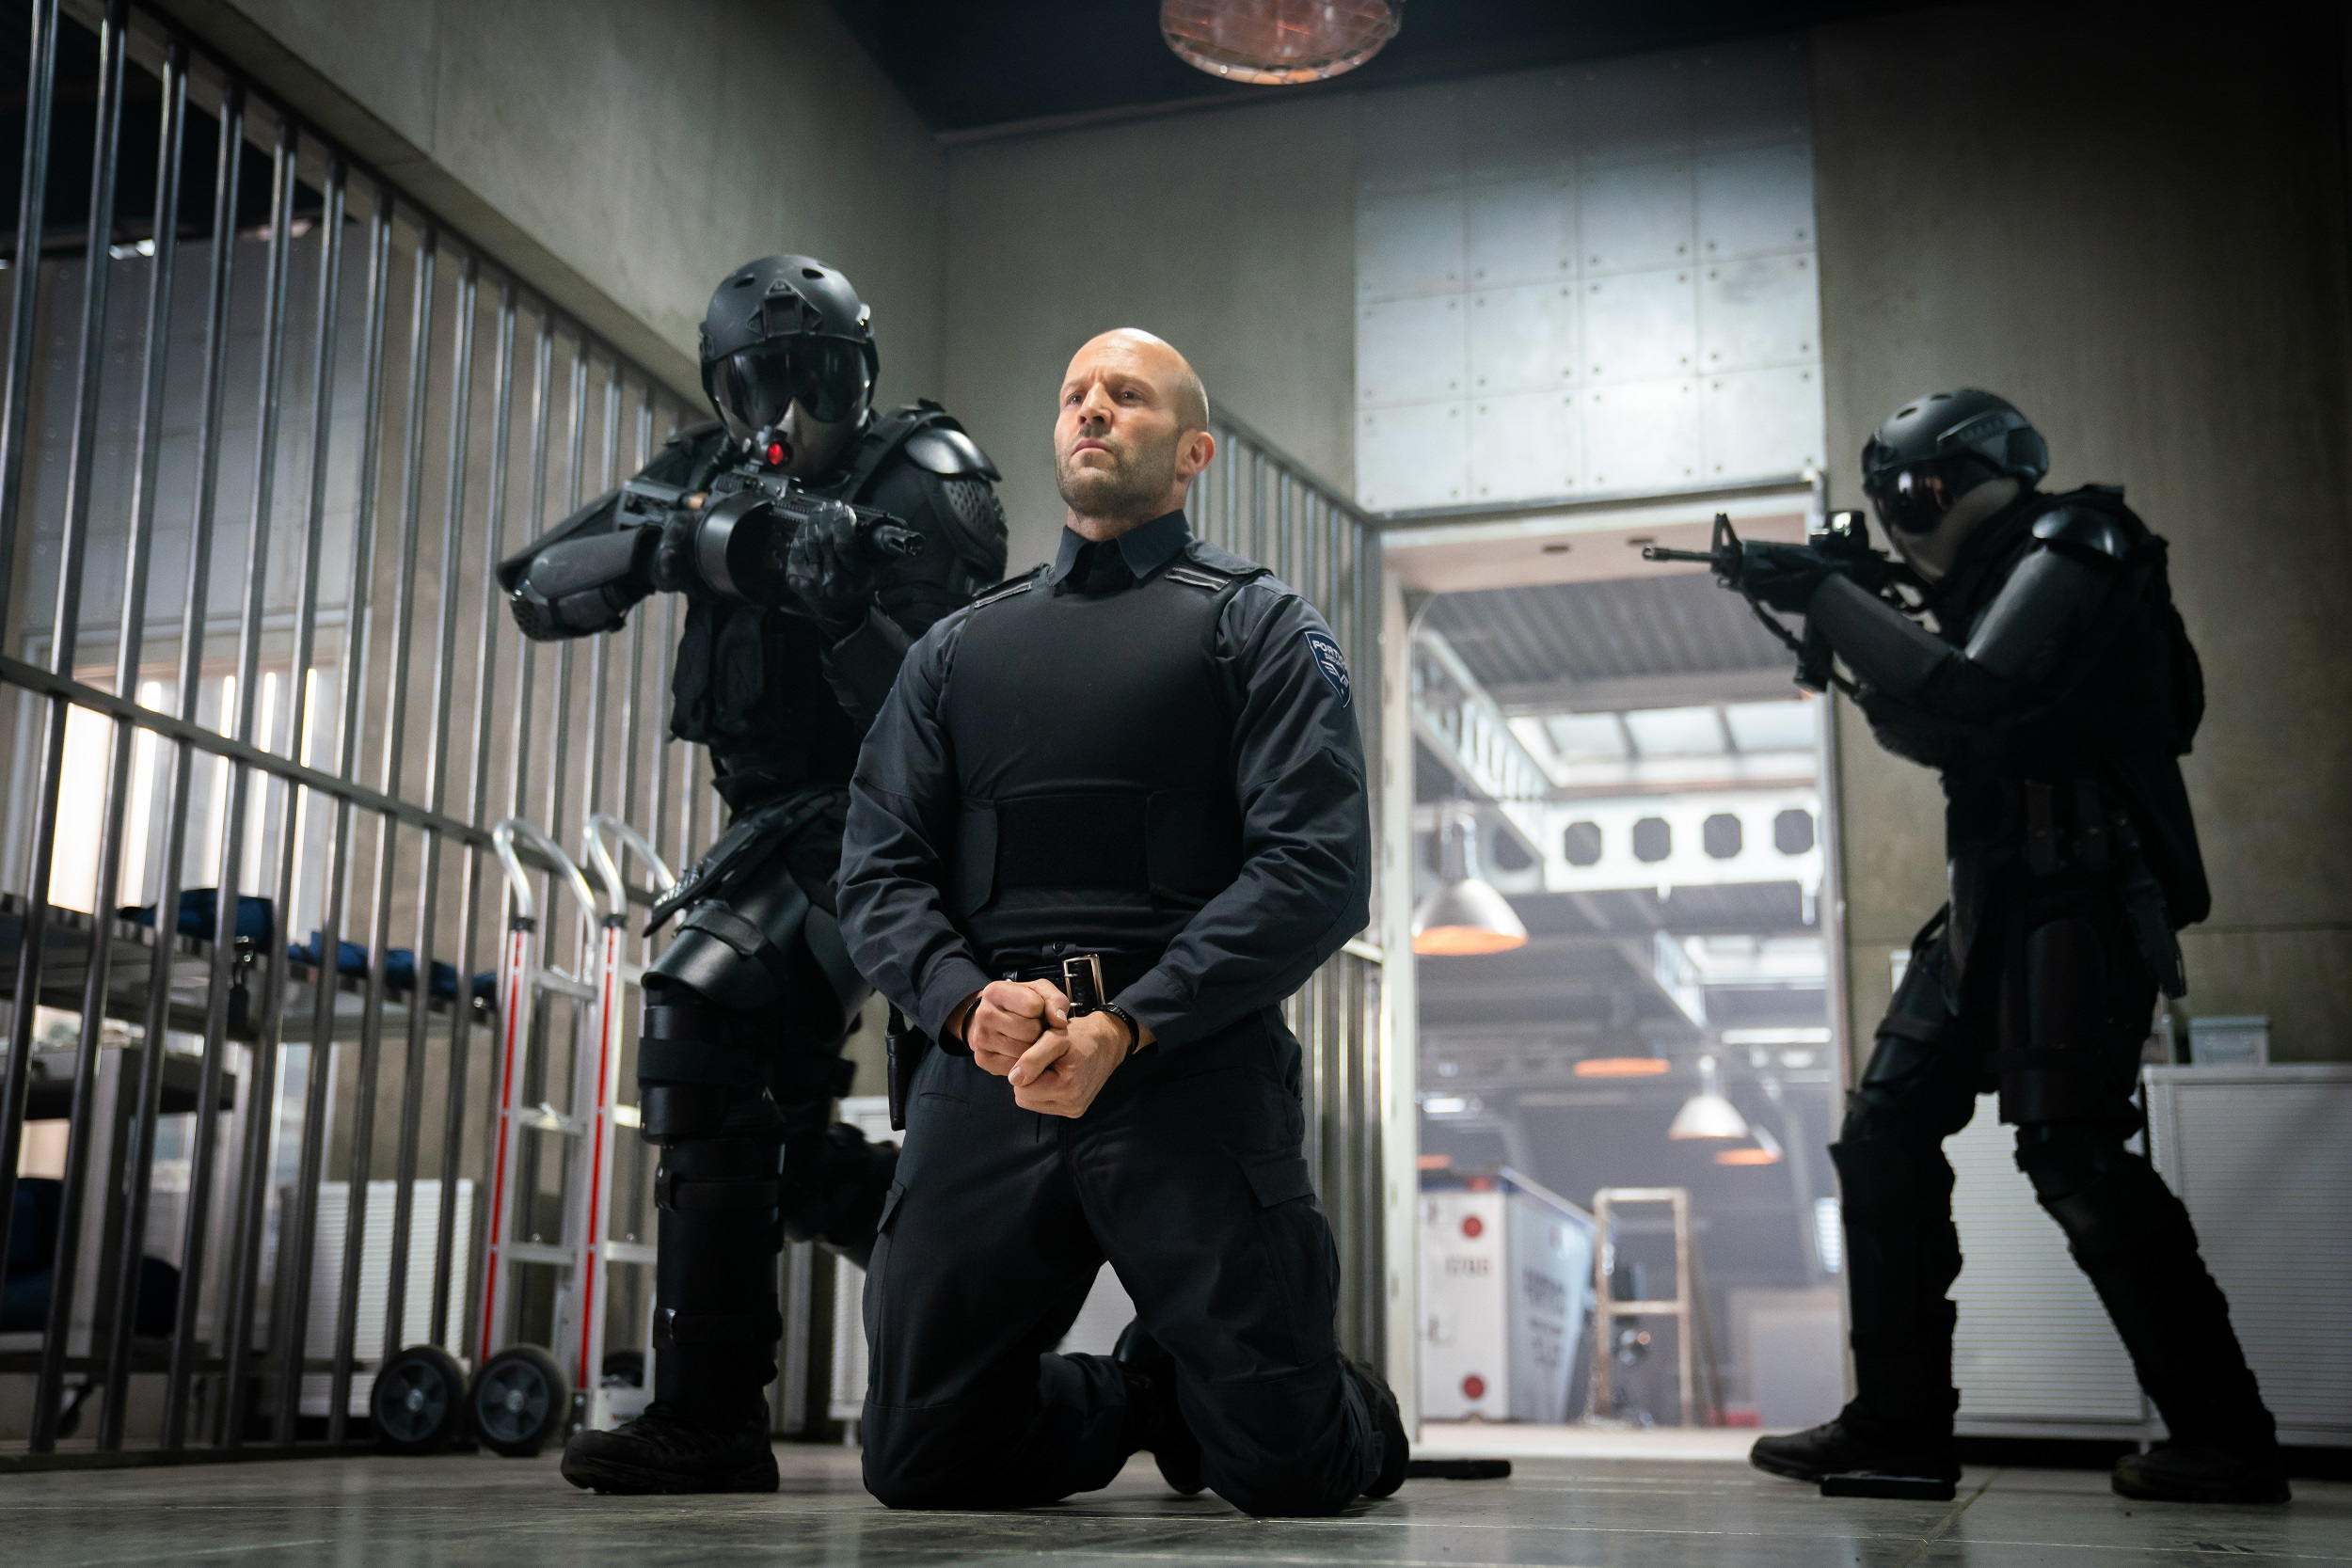 Jason Statham stars as H in director Guy Ritchie's WRATH OF MAN, A Metro Goldwyn Mayer Pictures film. Photo credit: Christopher Raphael © 2021 Metro-Goldwyn-Mayer Pictures Inc. All Rights Reserved